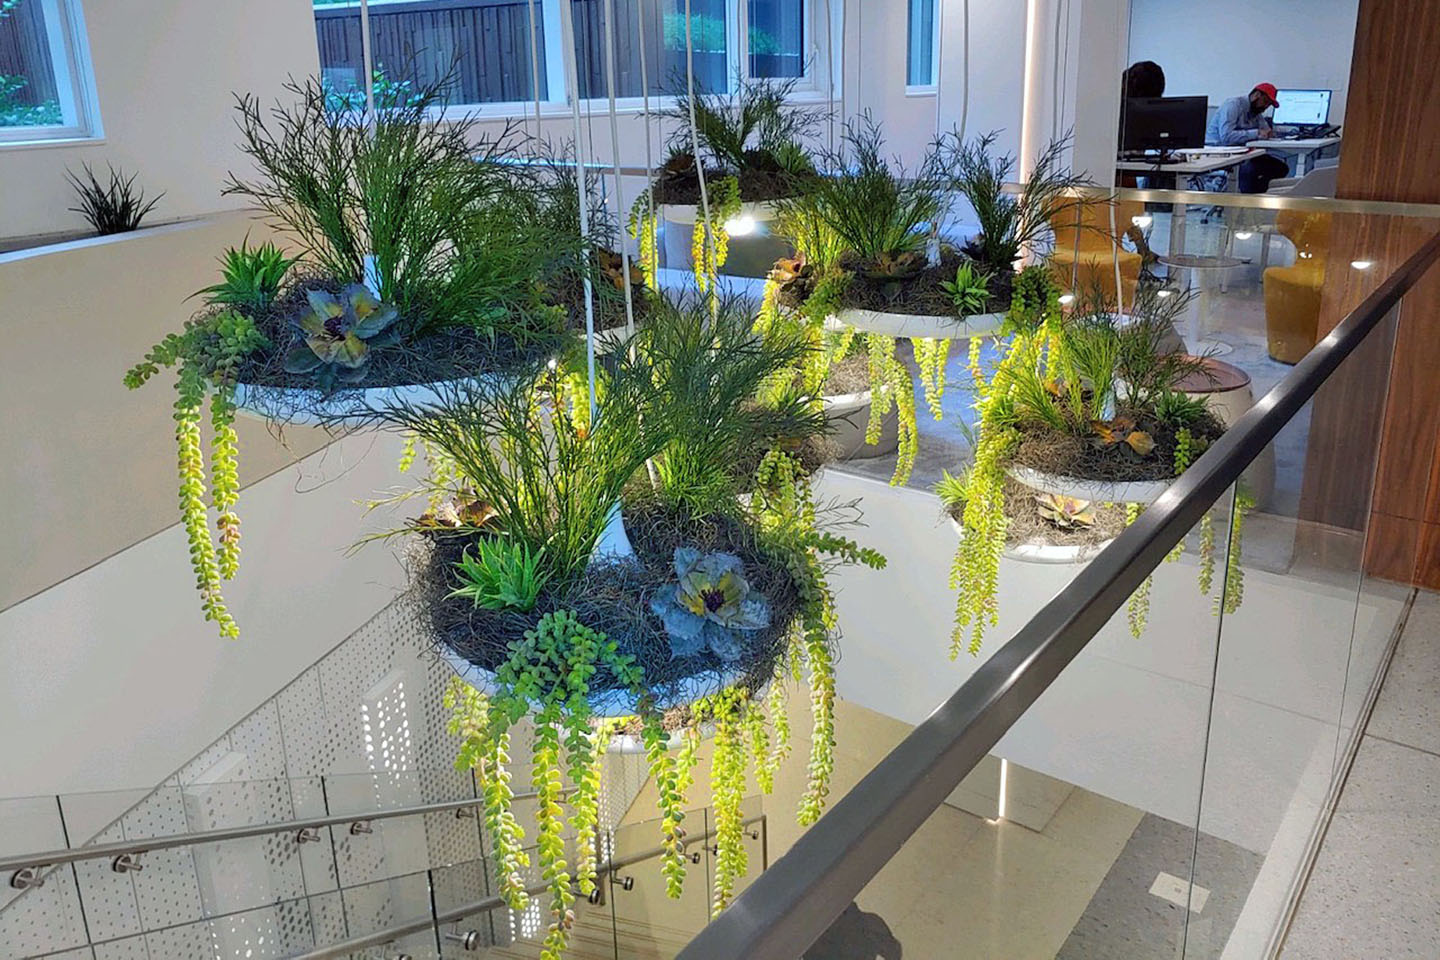 AgroSci Plantscape with Hanging Artificial Plants